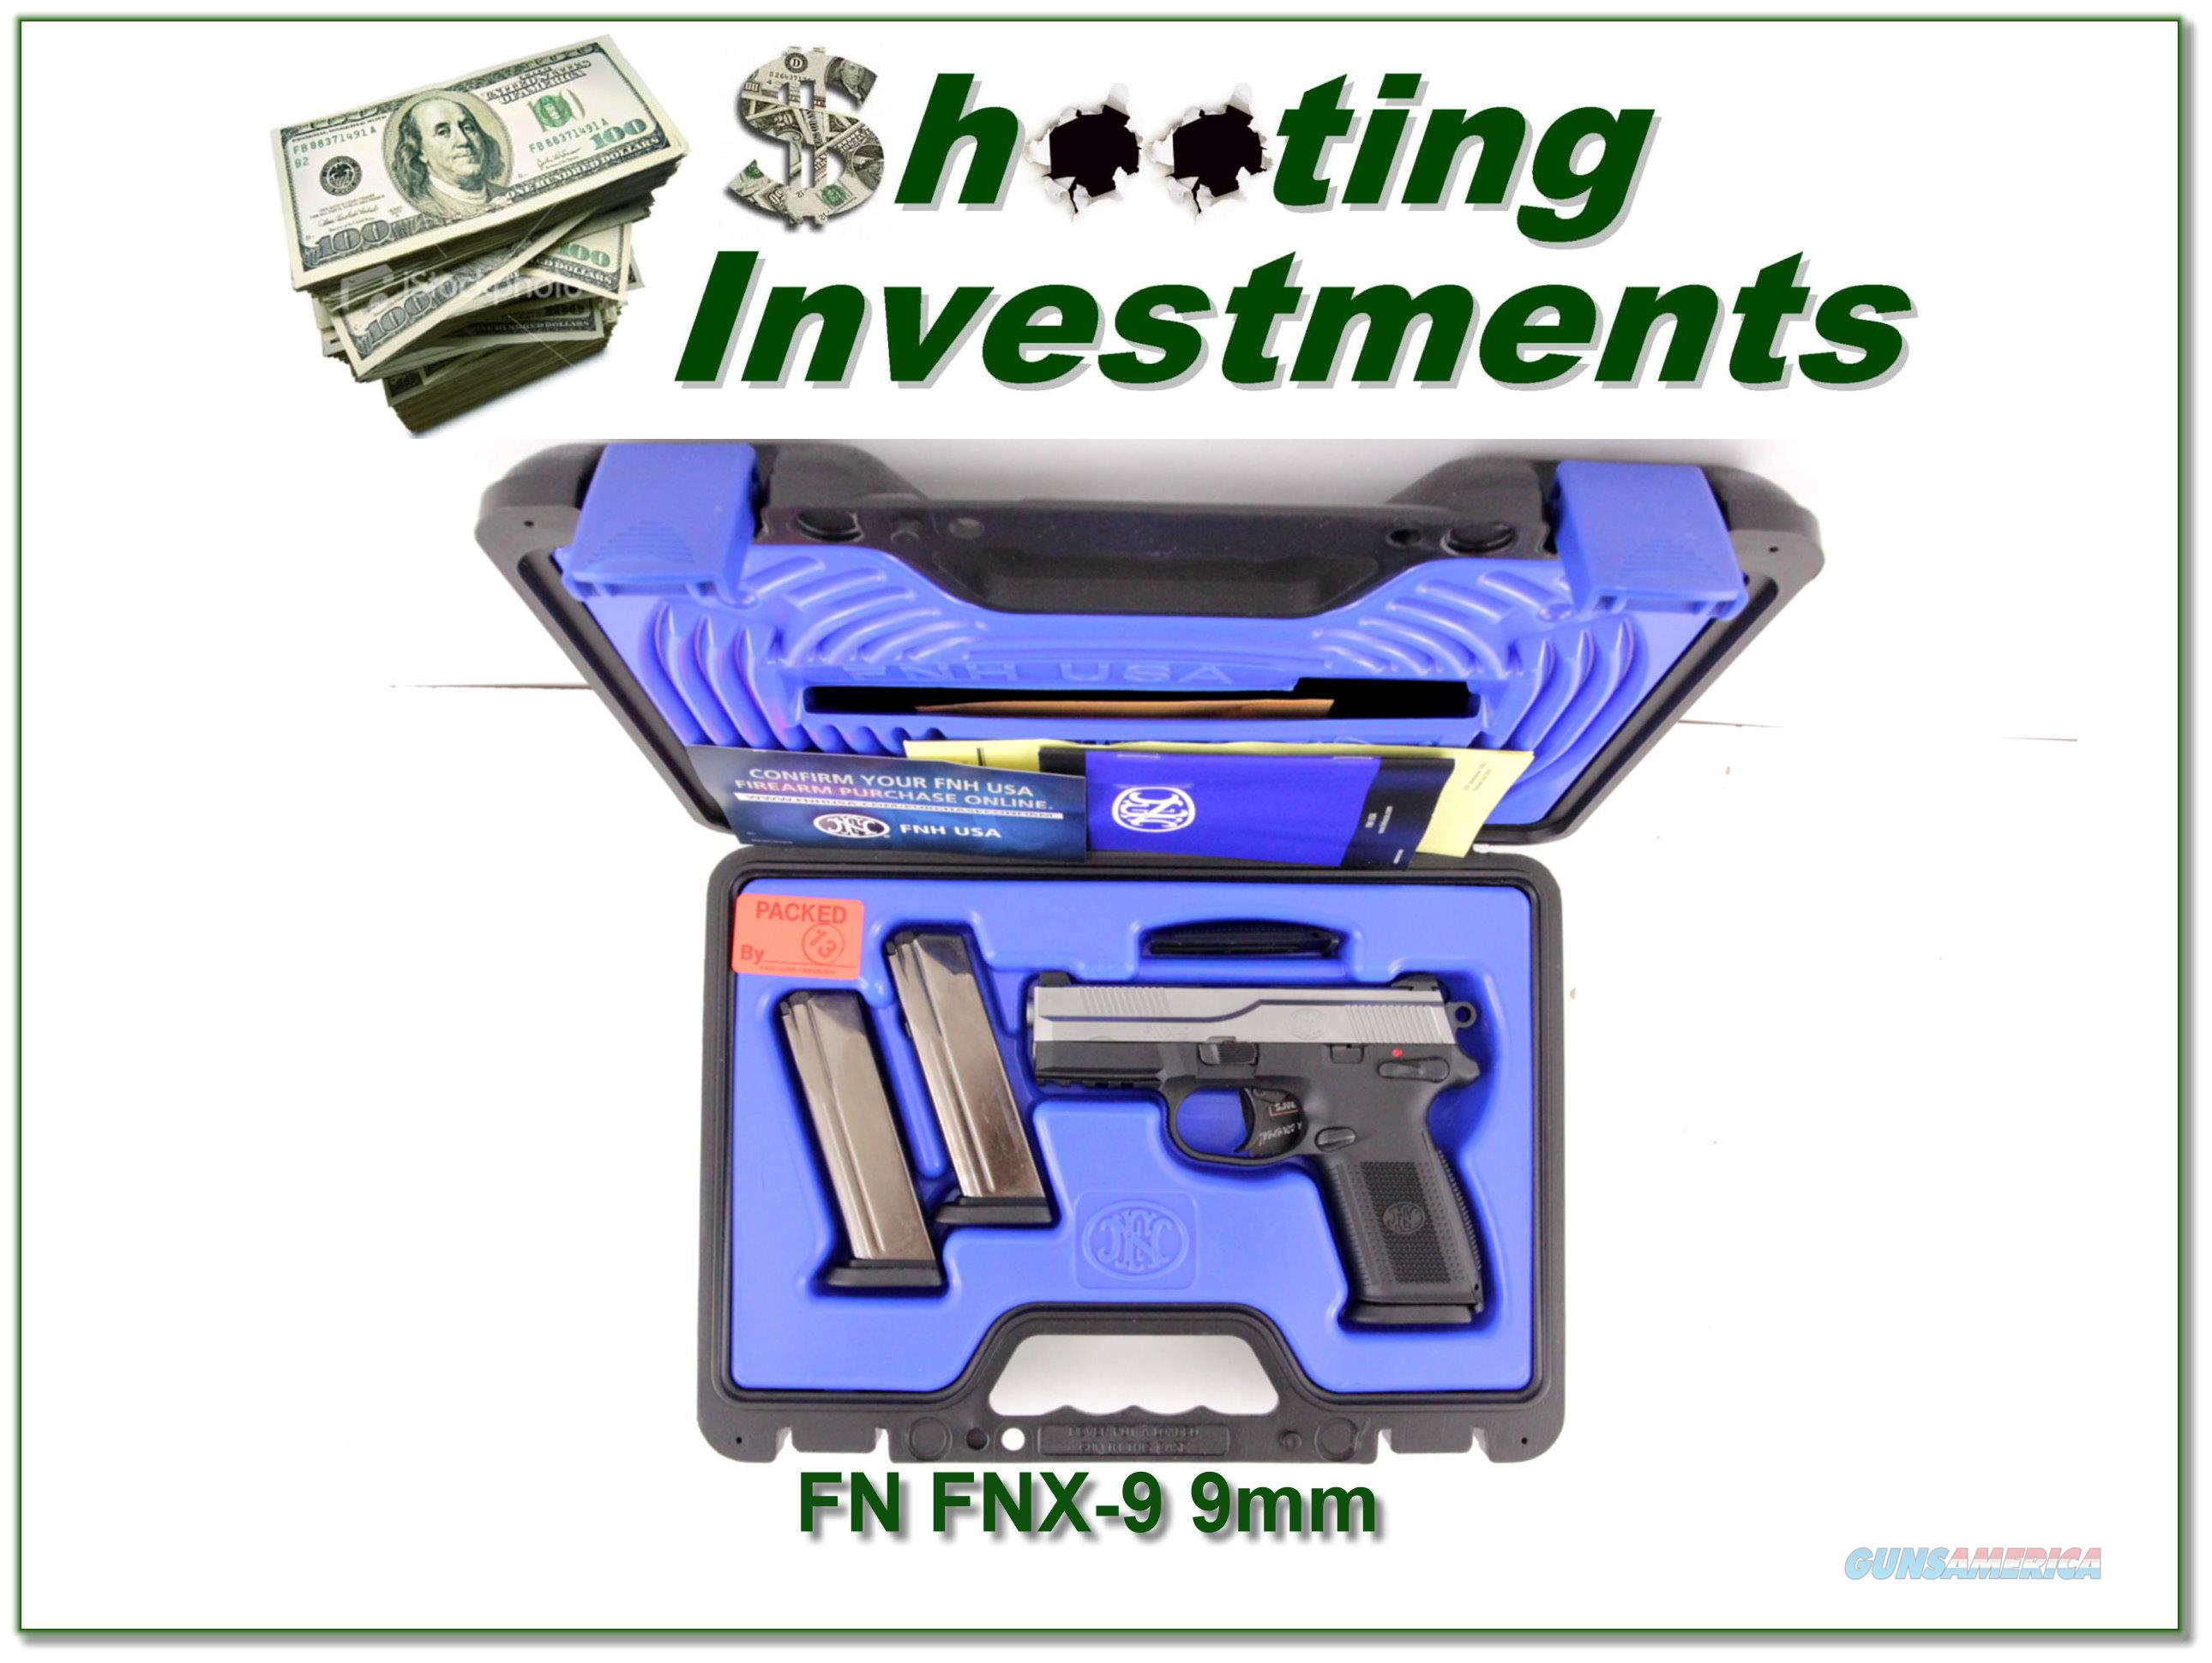 FN FNX-9 9mm unfired Night Sights in case 3 magazines!  Guns > Pistols > FNH - Fabrique Nationale (FN) Pistols > FNX